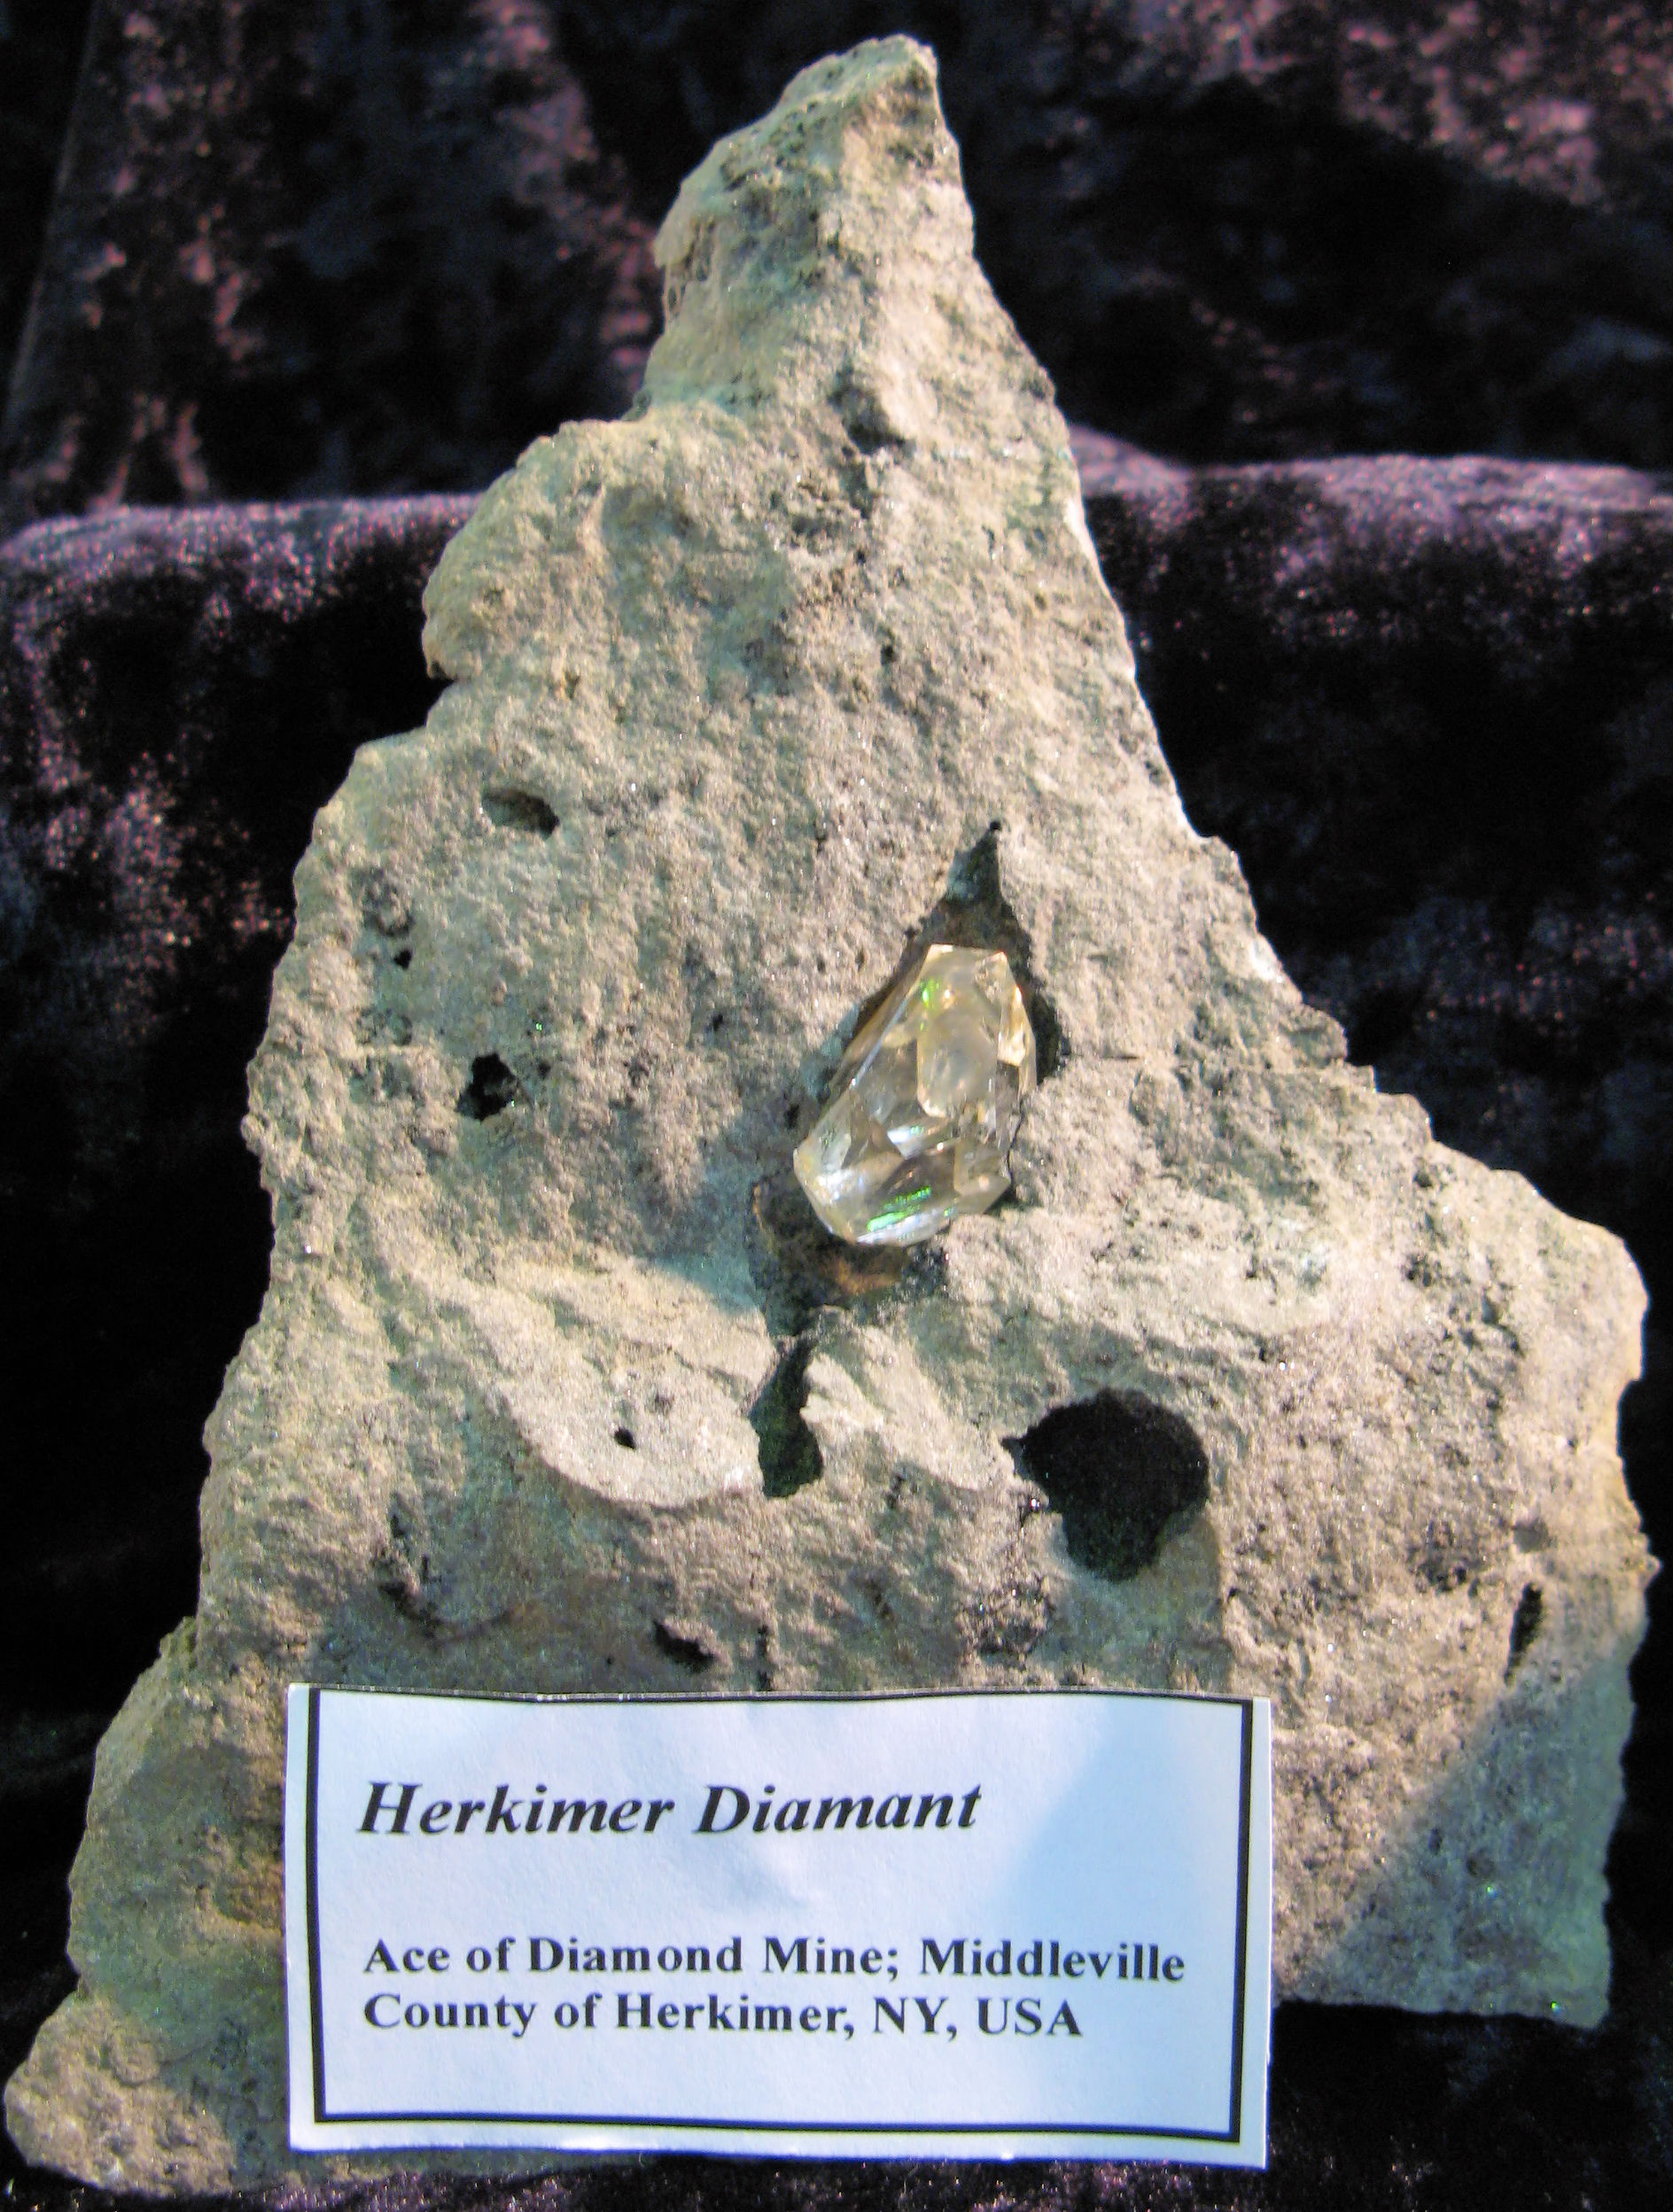 Herkimer Diamant - Middleville, County of Herkimer, NY, USA.JPG